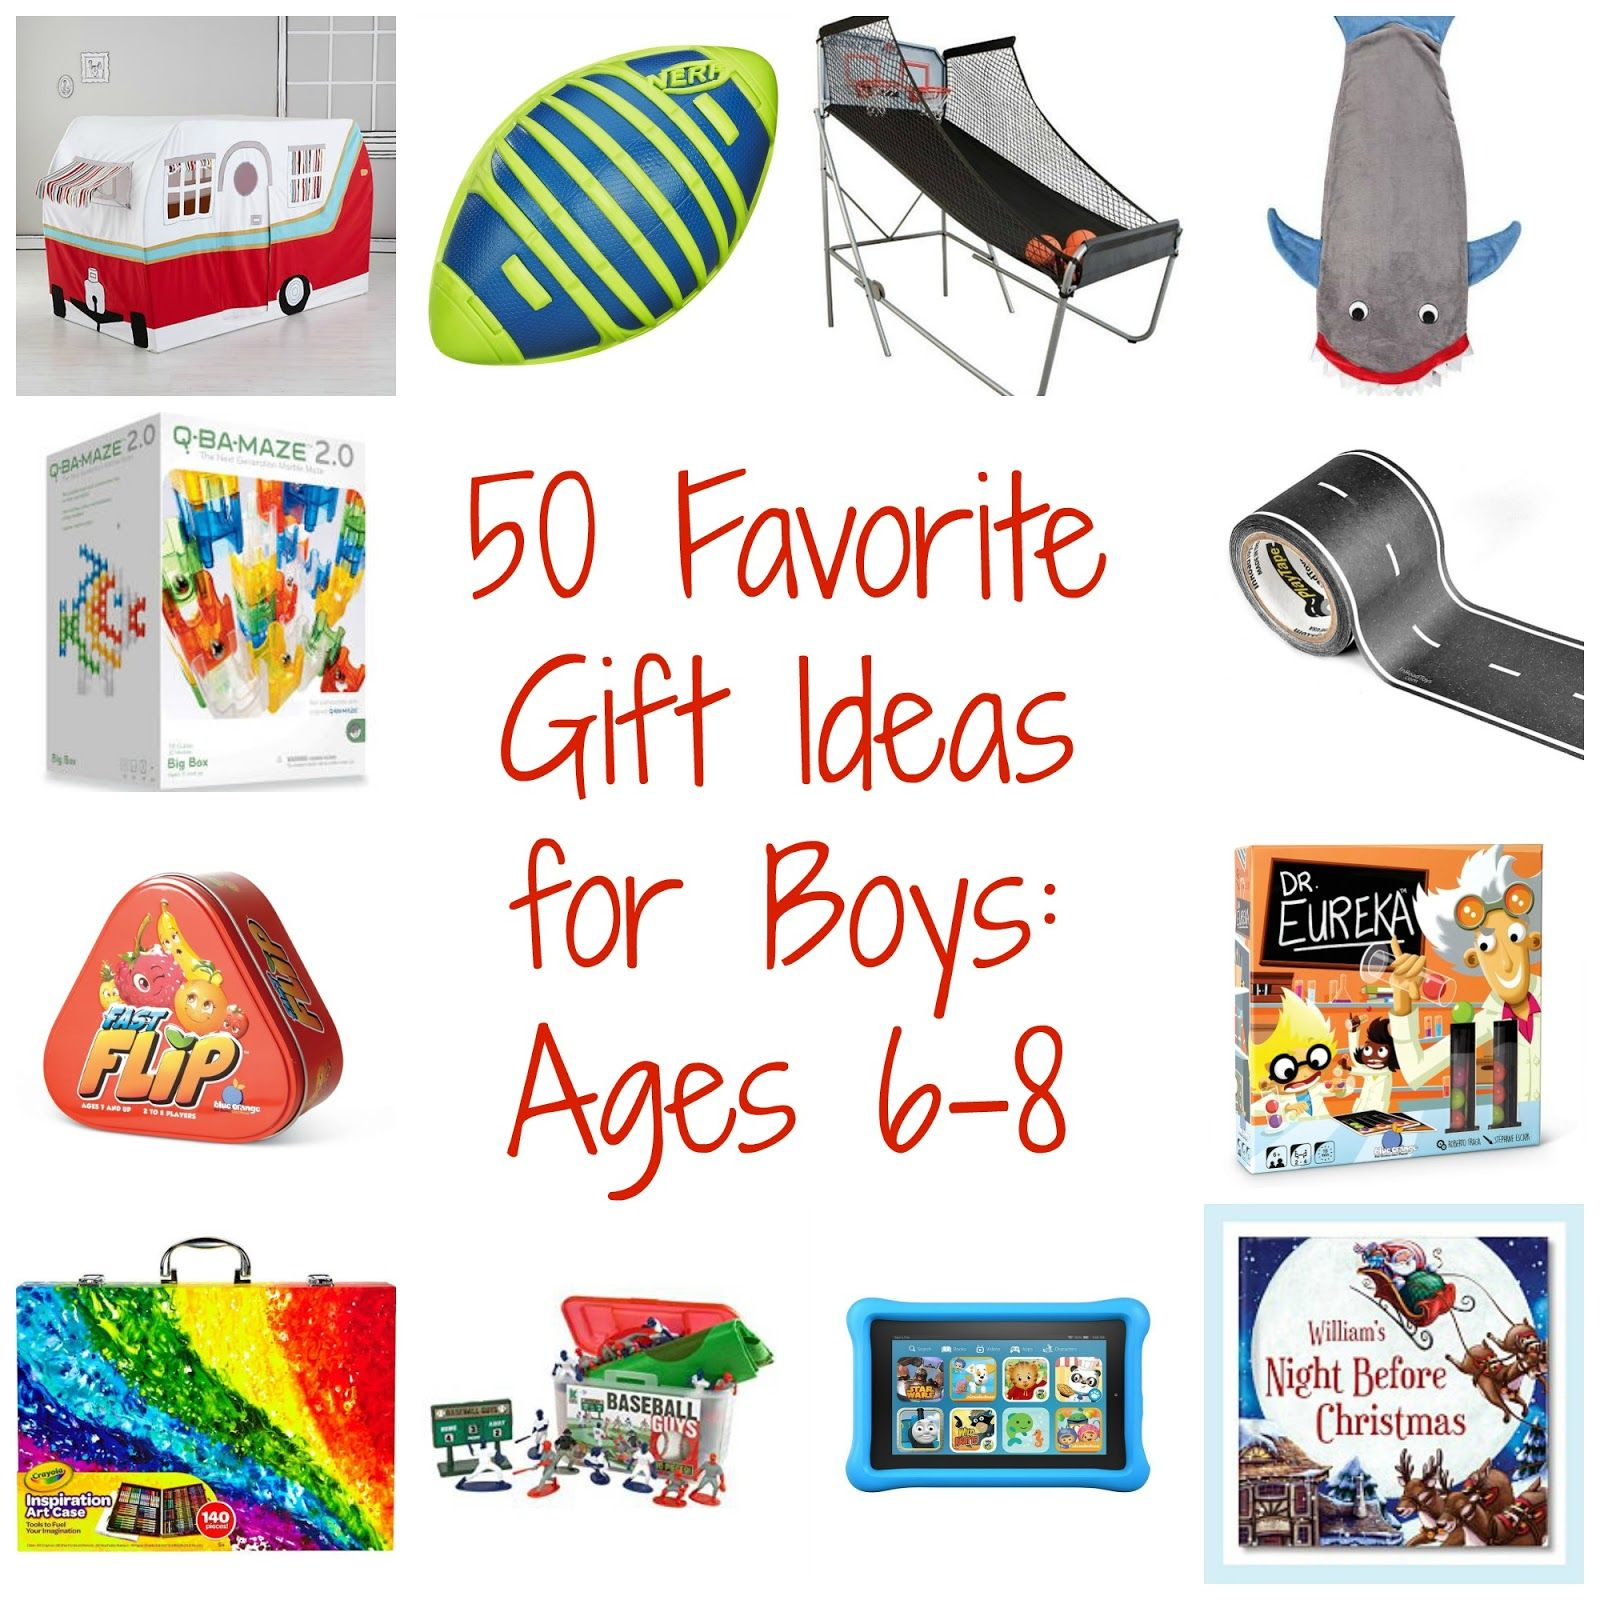 50 Favorite Gift Ideas for Boys Ages 68 Best gifts for